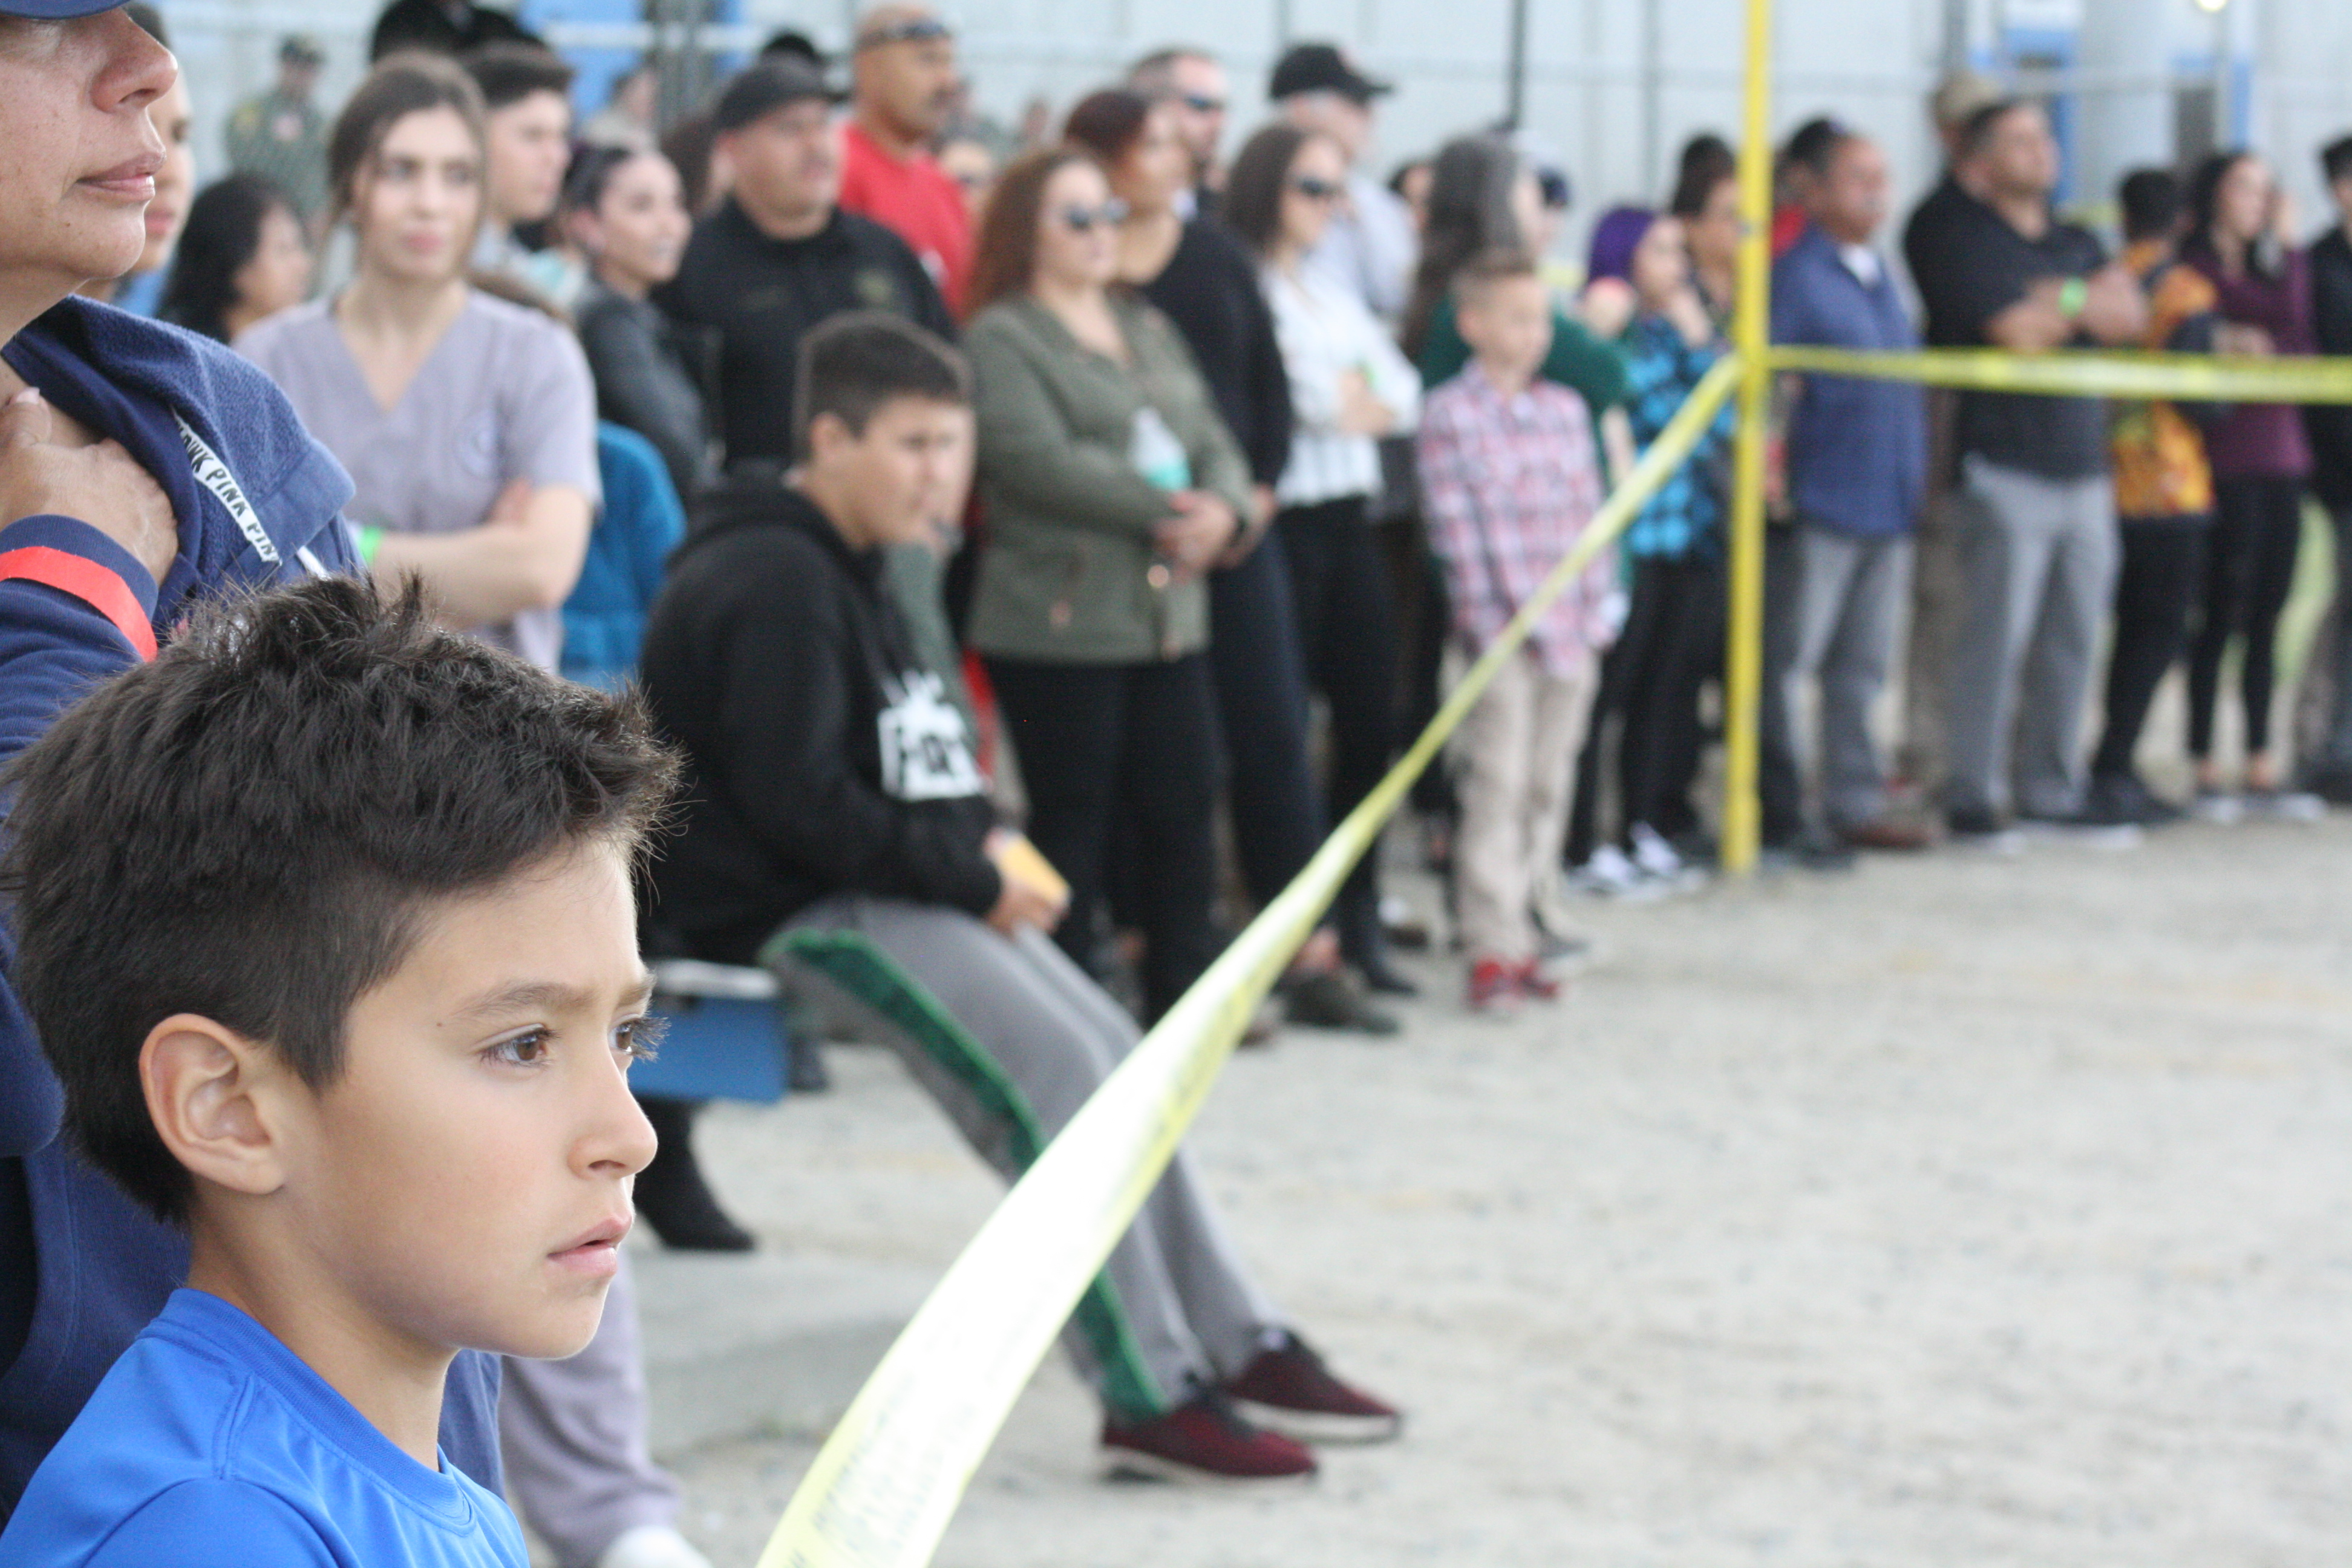 Children and parents look into a roped-off area.